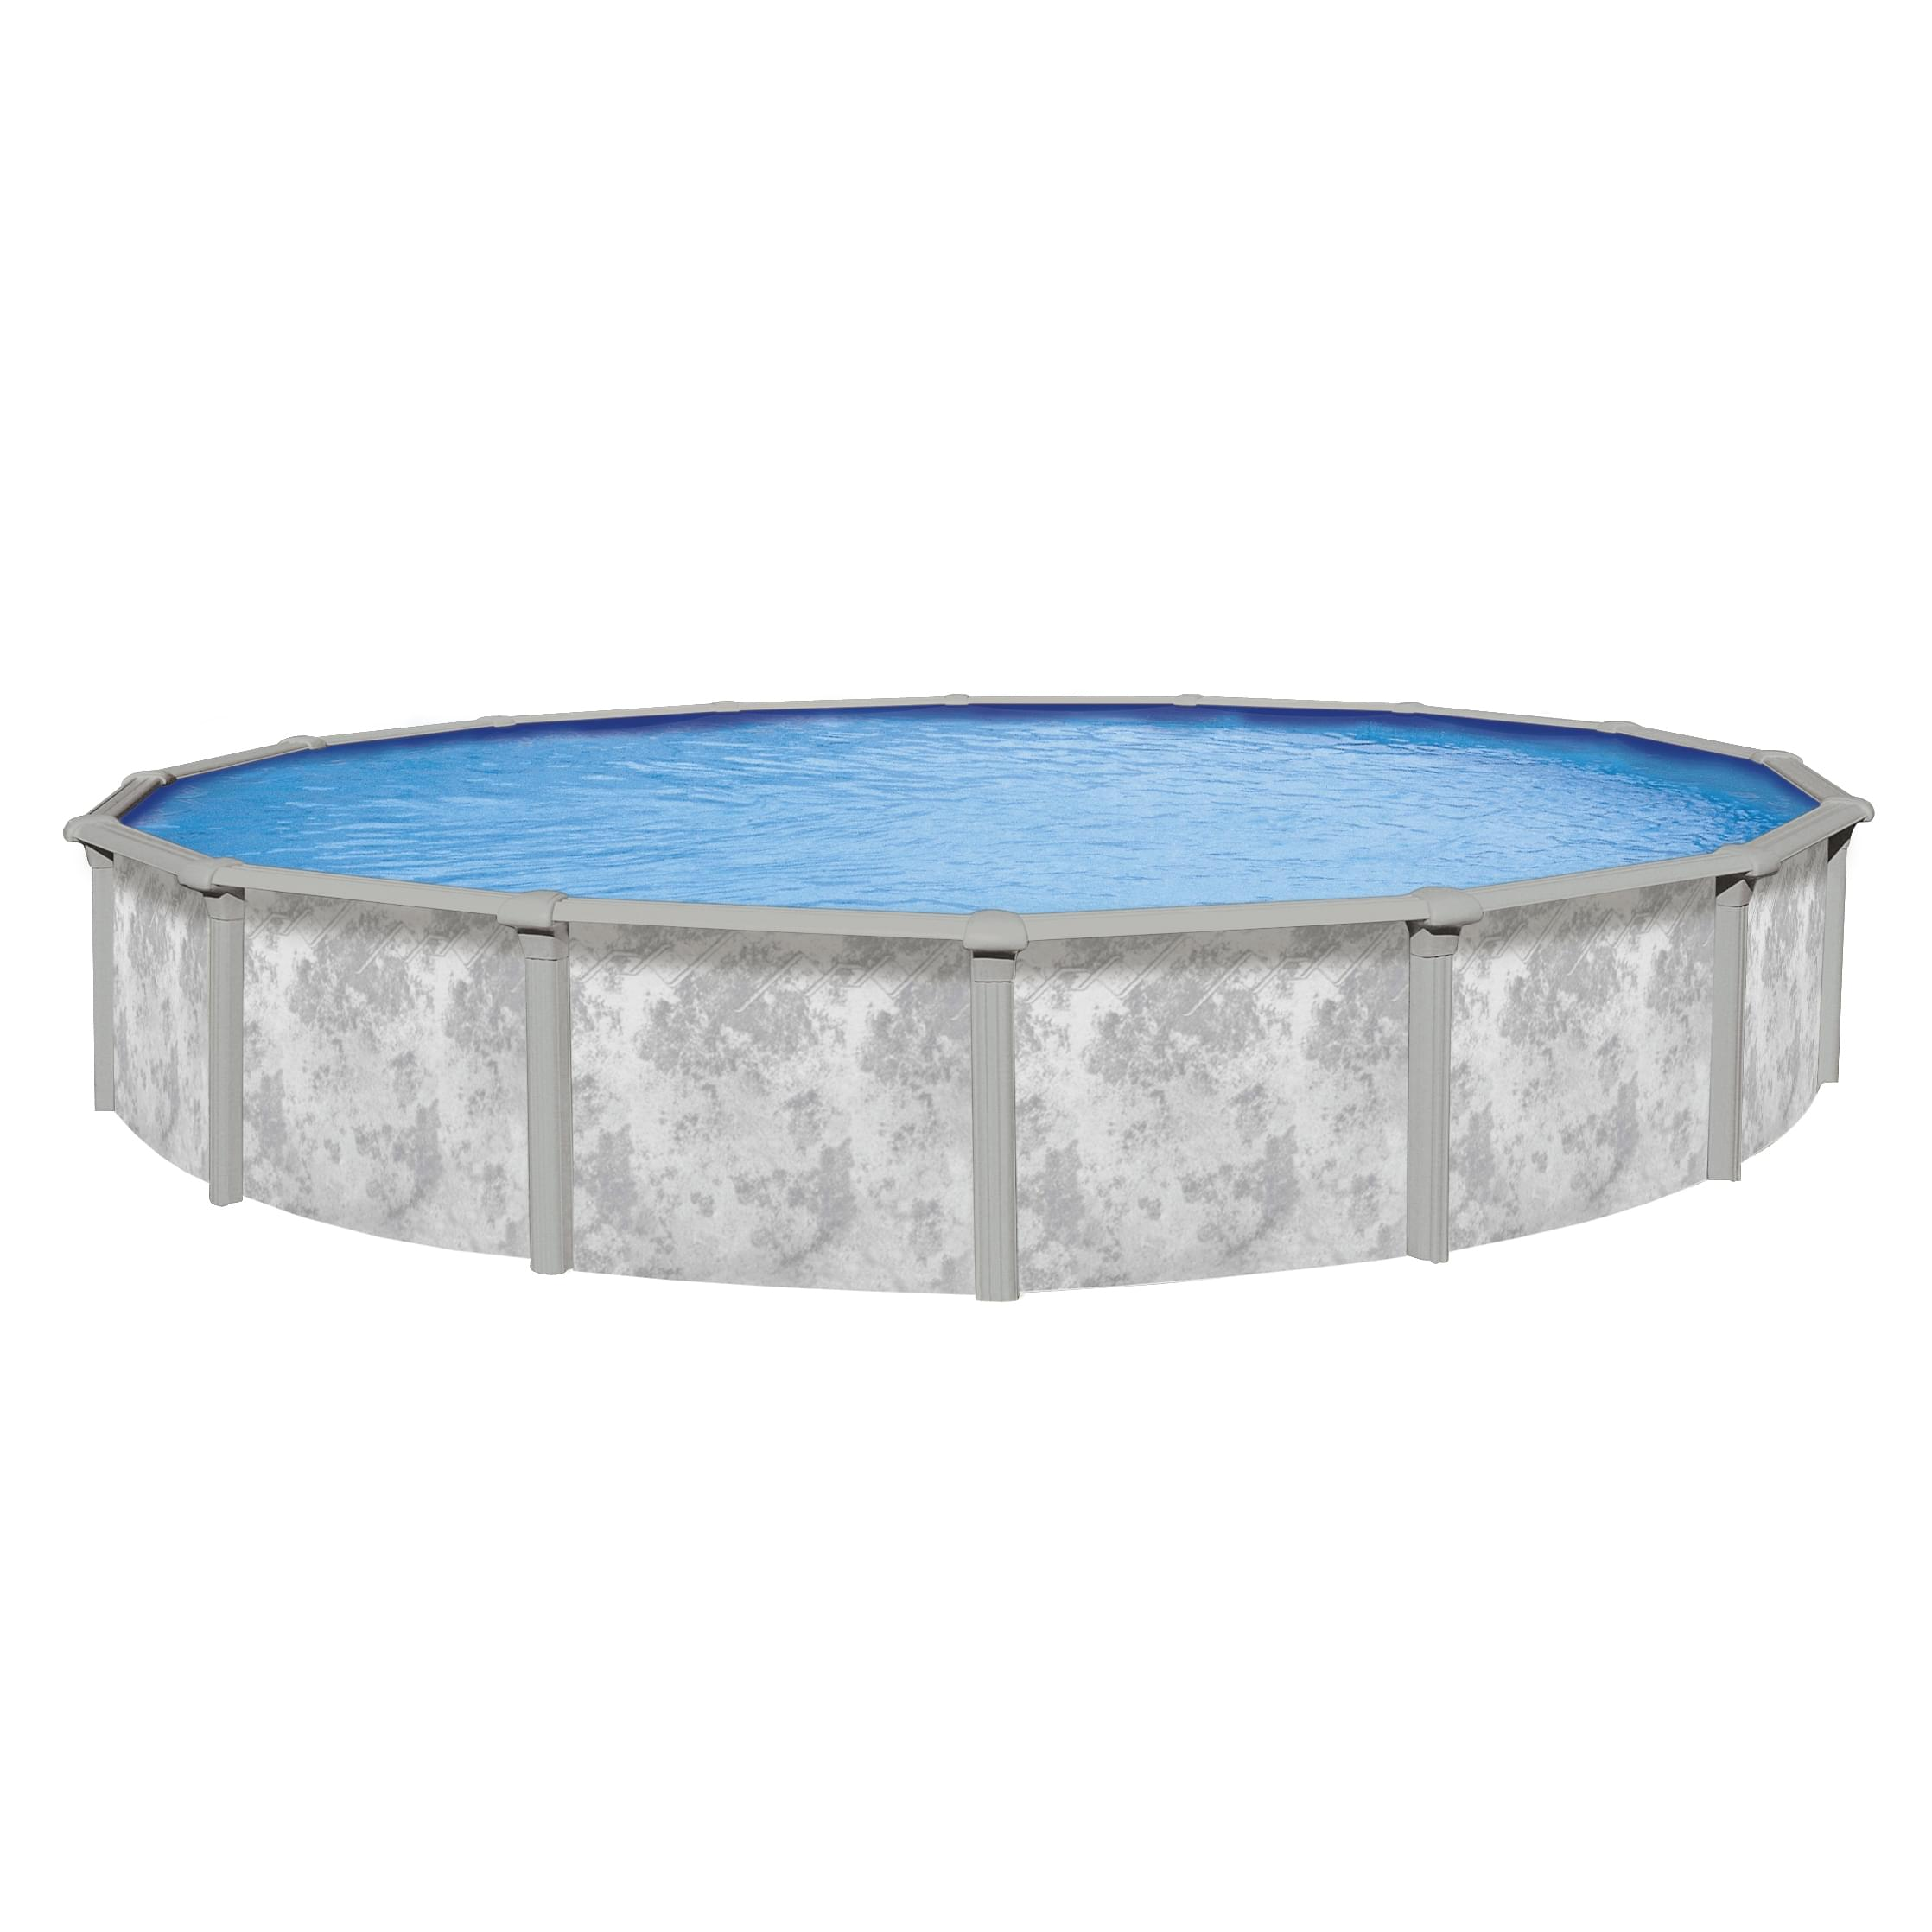 21 ft round j3000 above ground pool with 52 inch for Chauffe eau solaire pour piscine hors terre